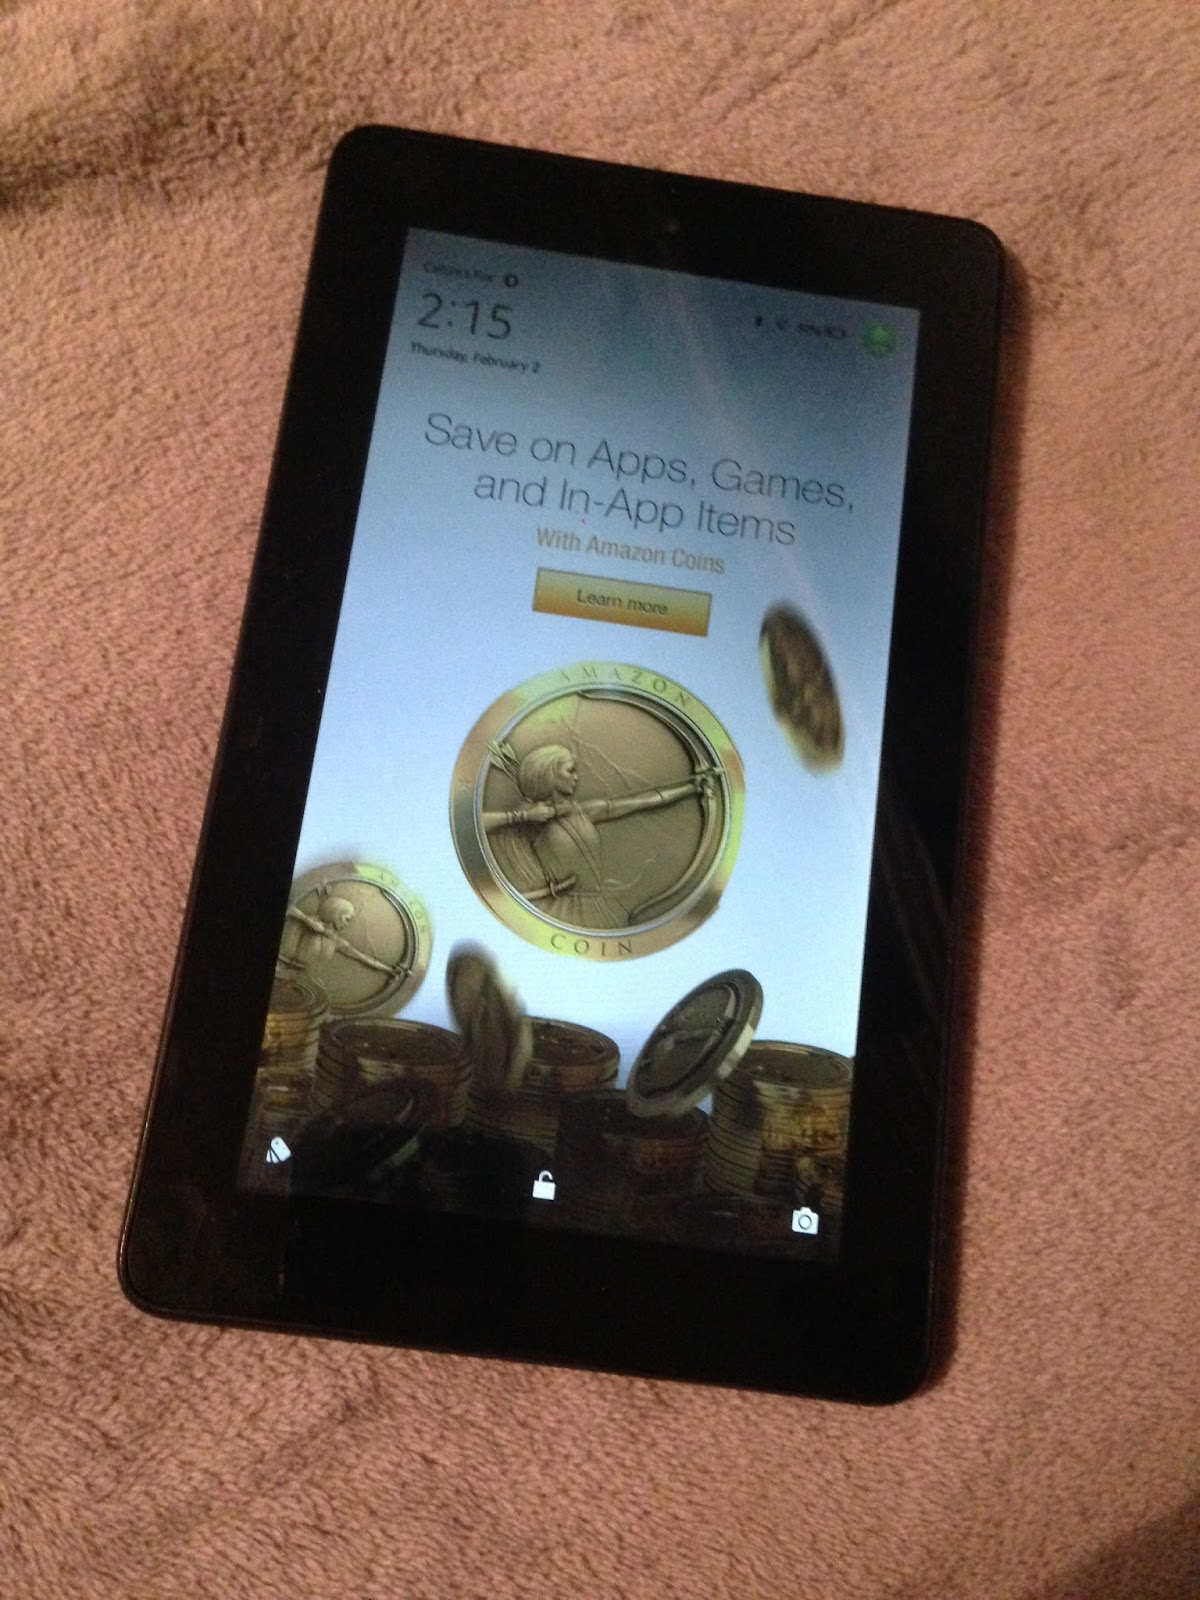 how to change lock screen on kindle fire 5th generation